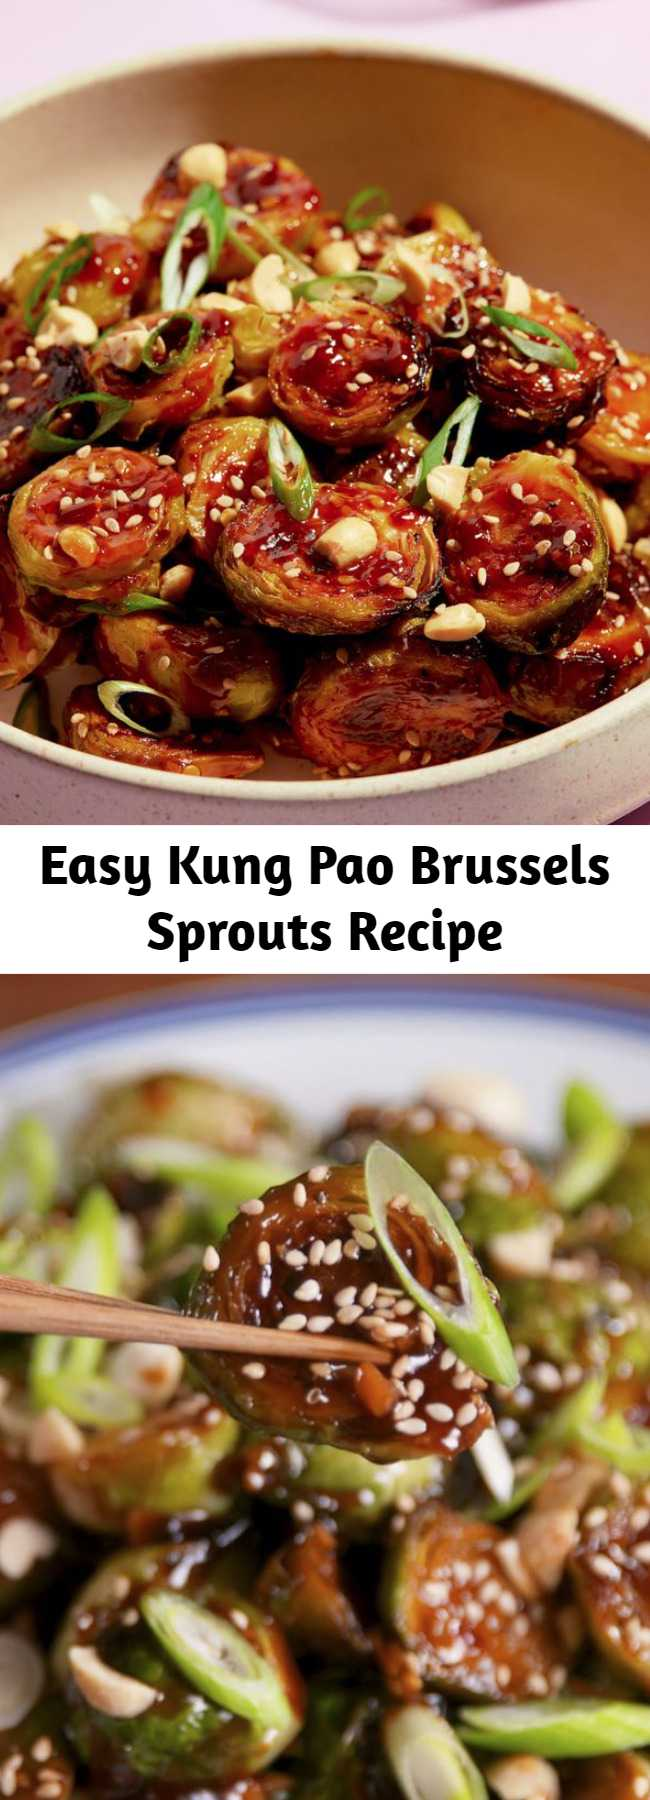 Easy Kung Pao Brussels Sprouts Recipe - The kung pao sauce on these will turn everyone into a lover of Brussels sprouts. Salty, spicy, and addicting. #food #easyrecipe #healthyeating #cleaneating #vegetarian